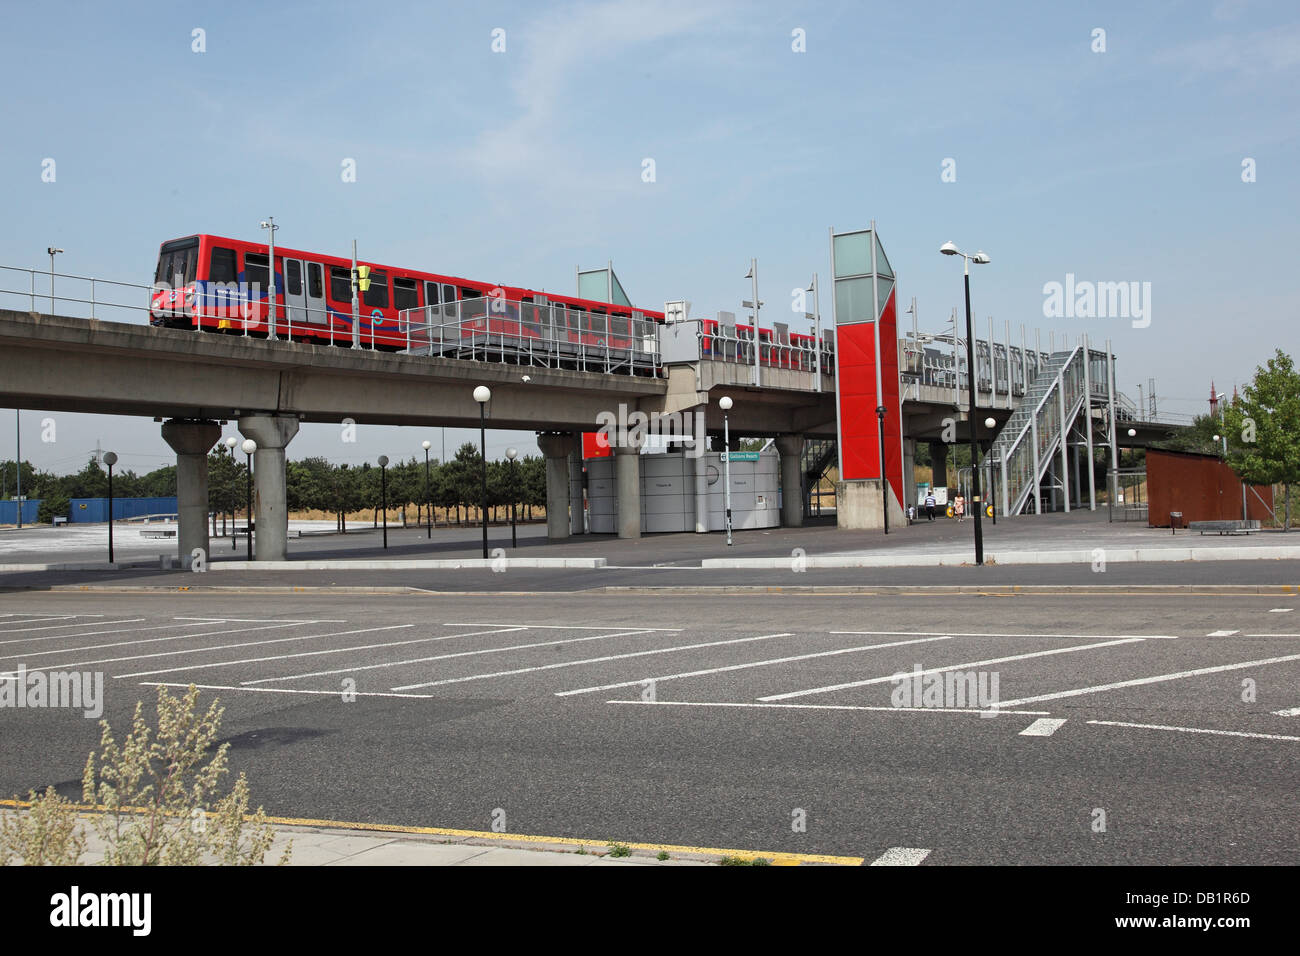 A London Docklands Light Railway train departs from Gallions Reach station in Beckton, east London, UK - Stock Image